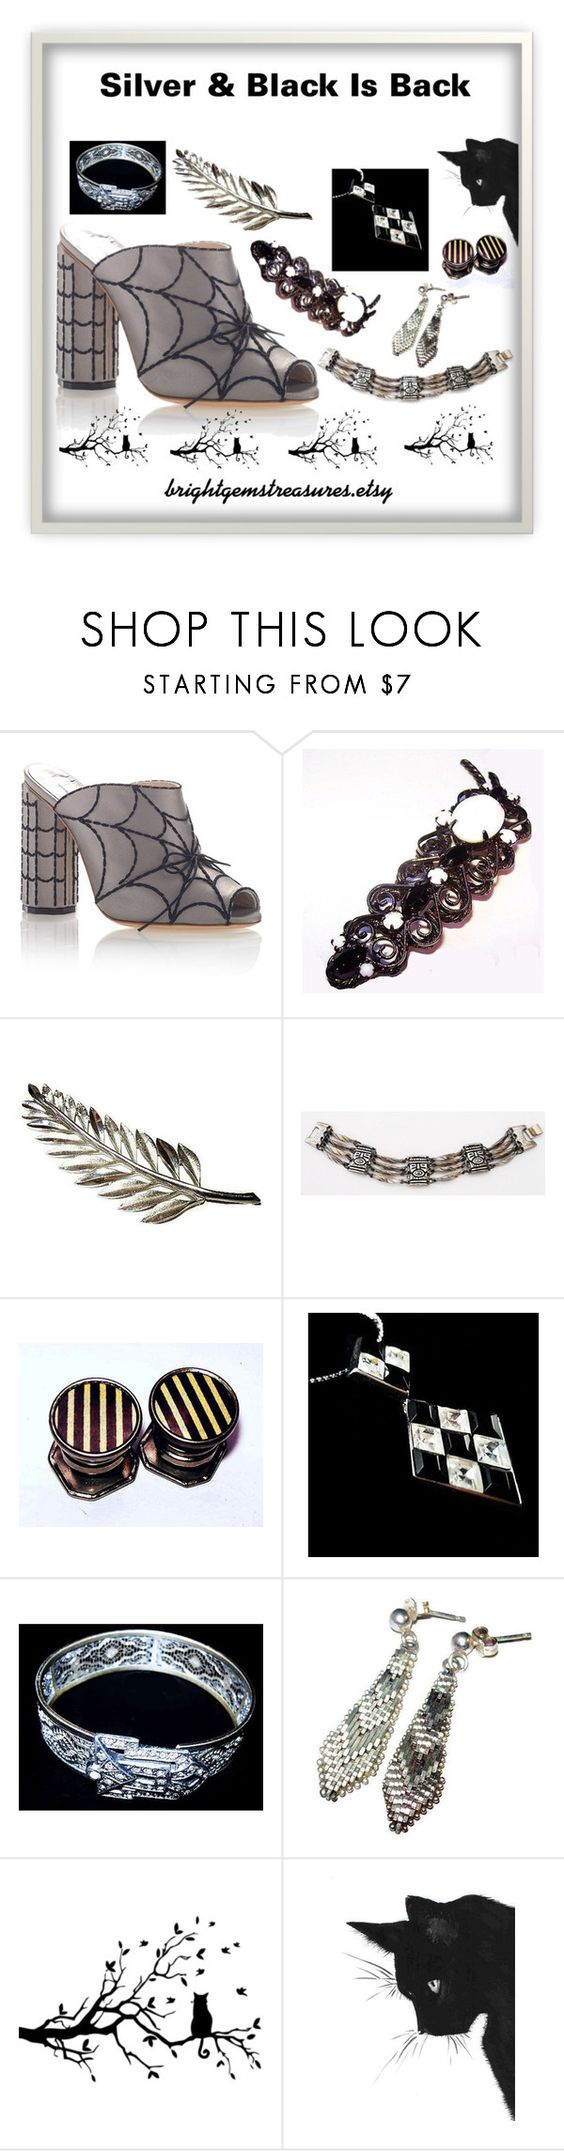 """""""silver & black is back"""" by brightgemsu ❤ liked on Polyvore featuring Marco de Vincenzo, Trifari and WALL"""